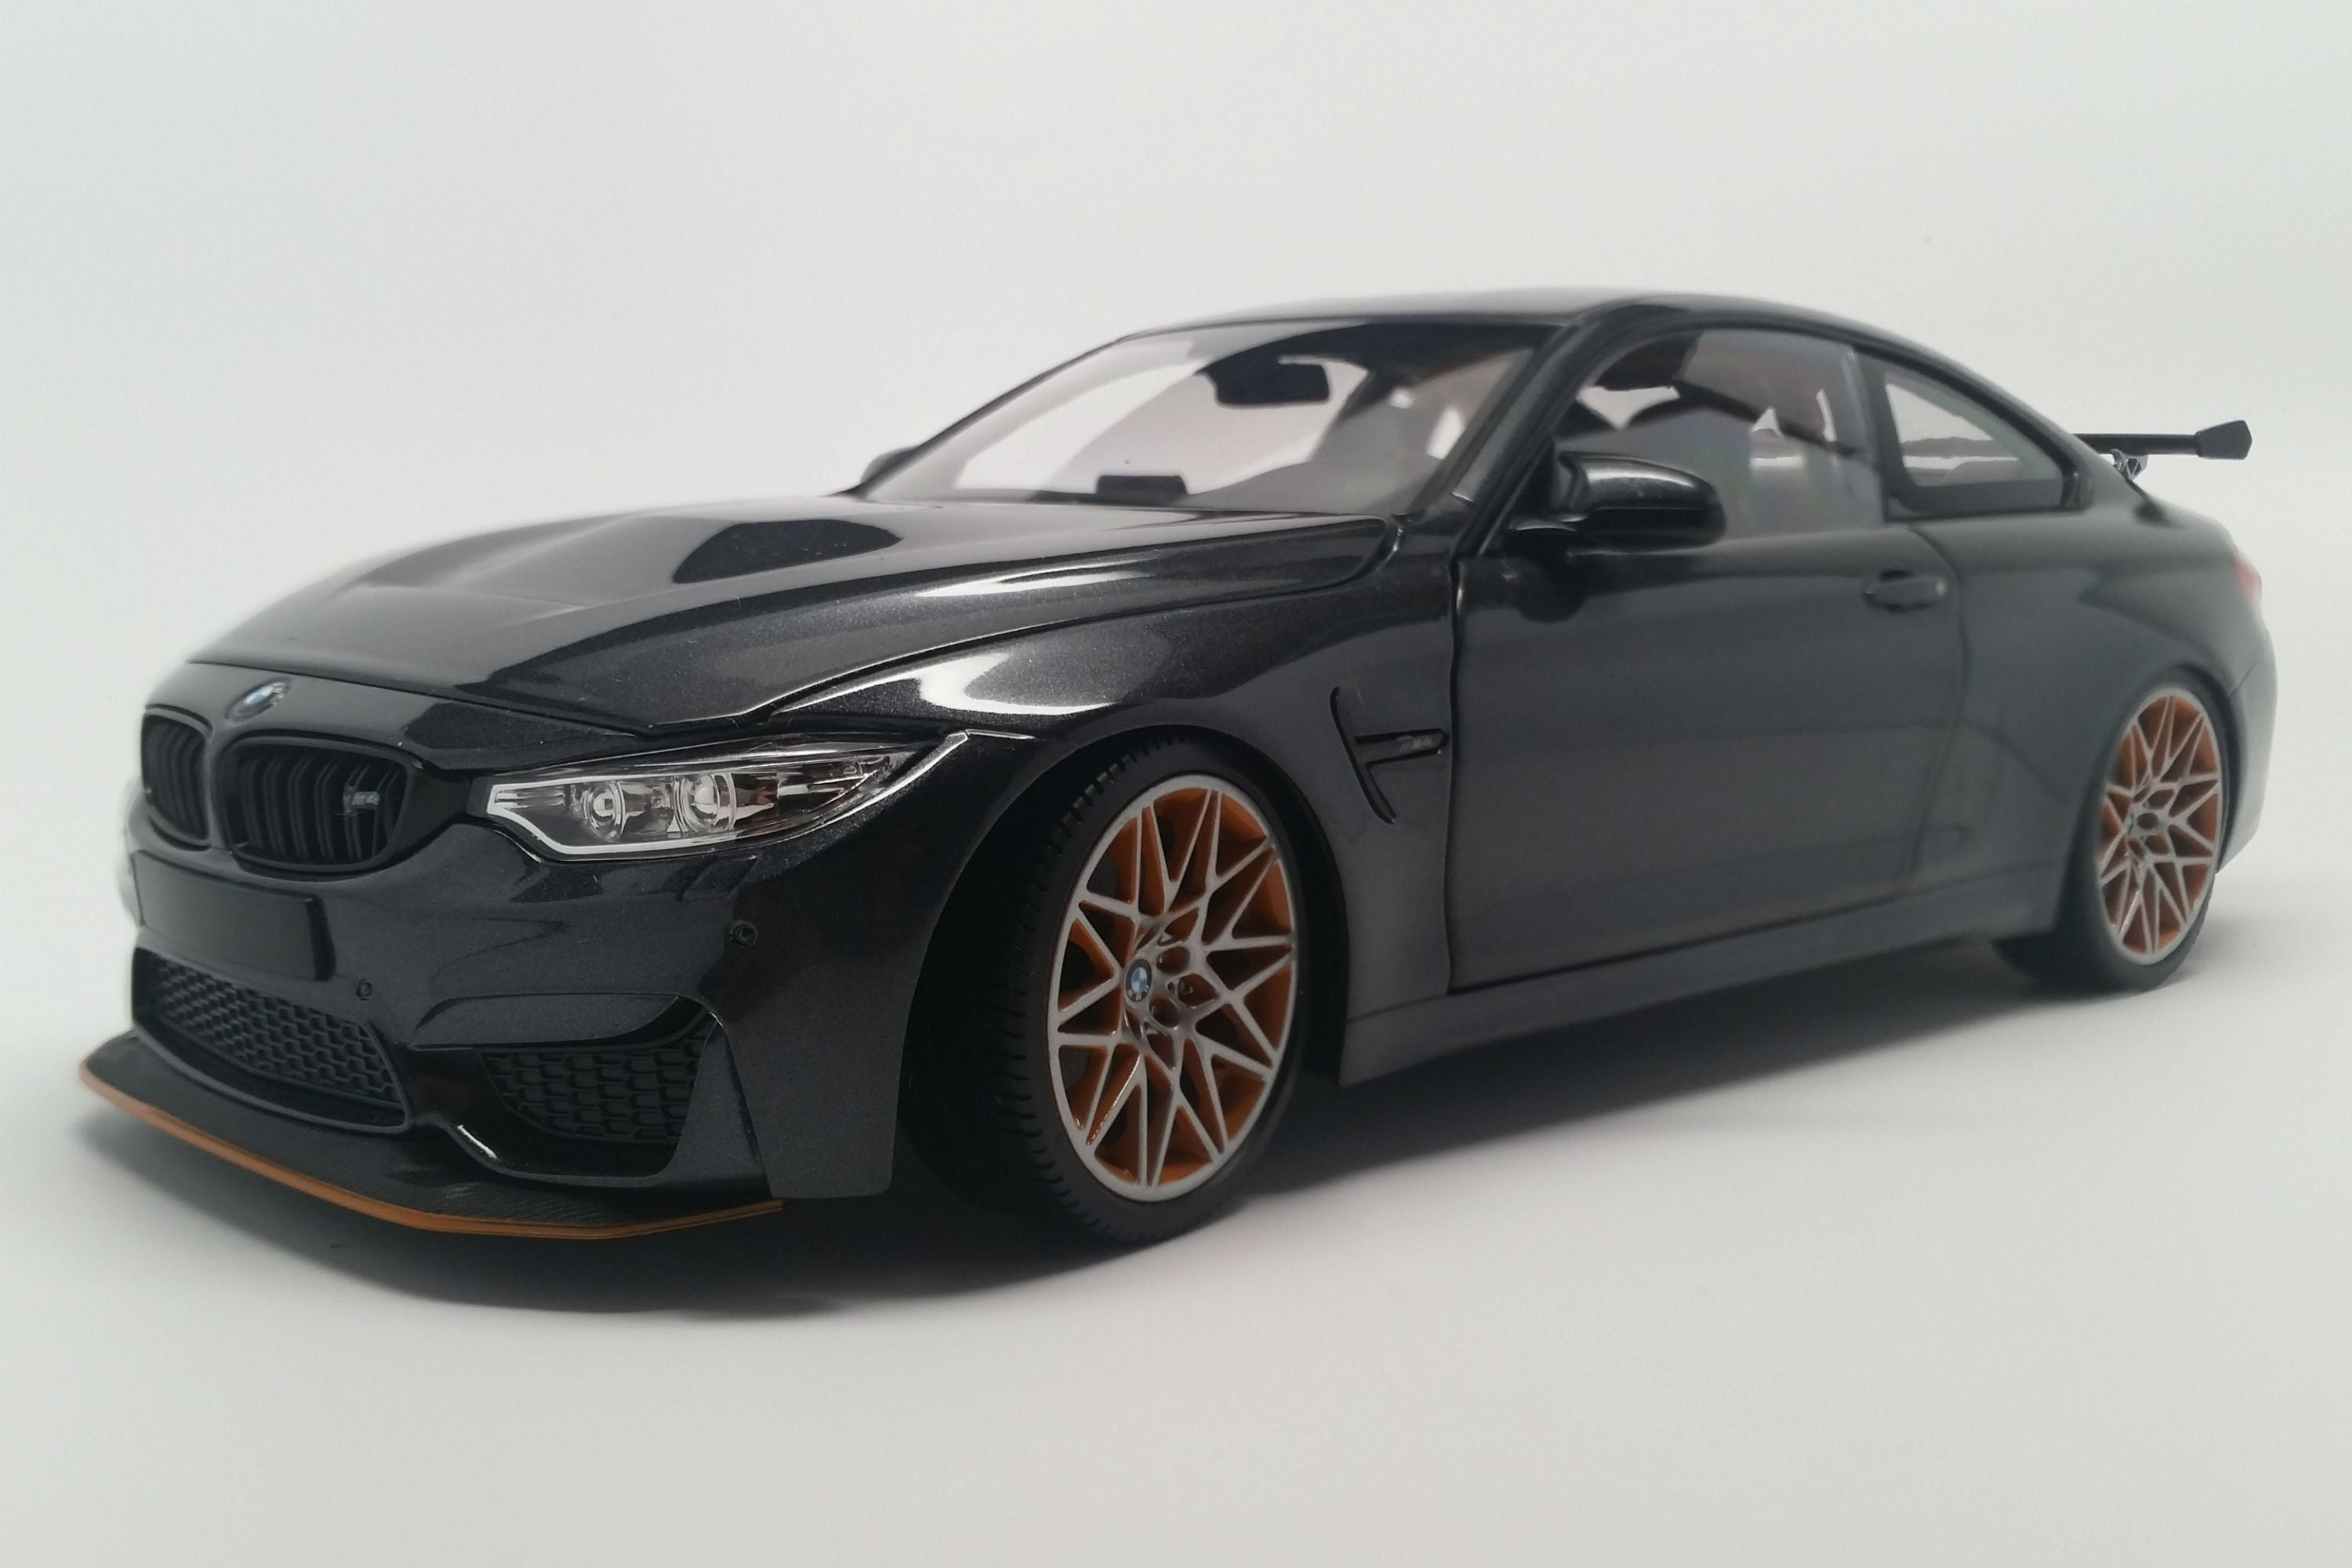 BMW M4 GTS (2016) | 1:18 Scale Diecast Model Car by Minichamps | Front Quarter